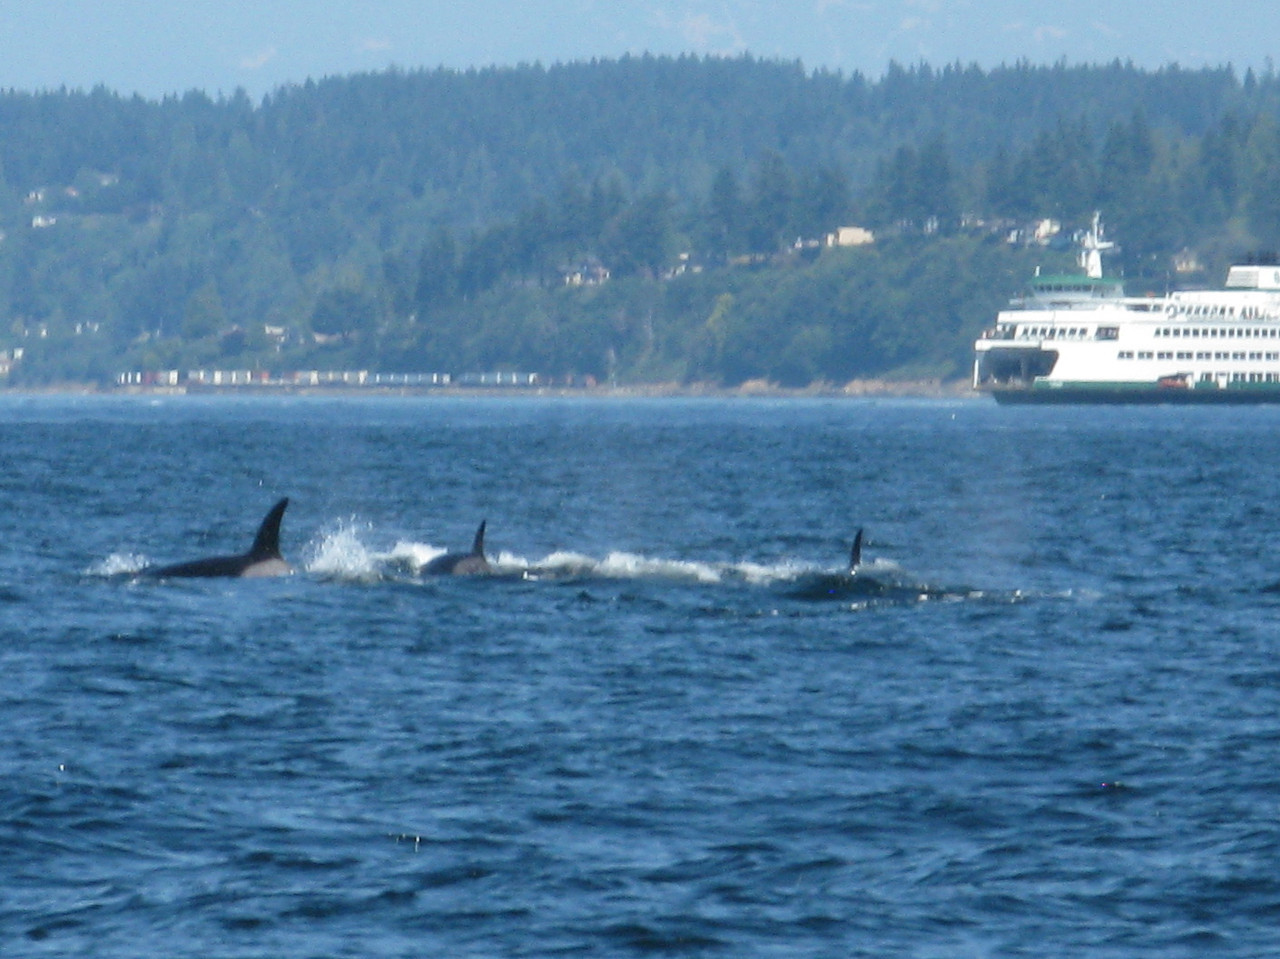 Both of the orcas on the left are showing a grey spot behind their dorsal fins.  The identity of individual orcas, which are  tracked in the San Juan Islands, can be established by the shape and color of the patch of grey or white in the saddle behind the dorsal fin.